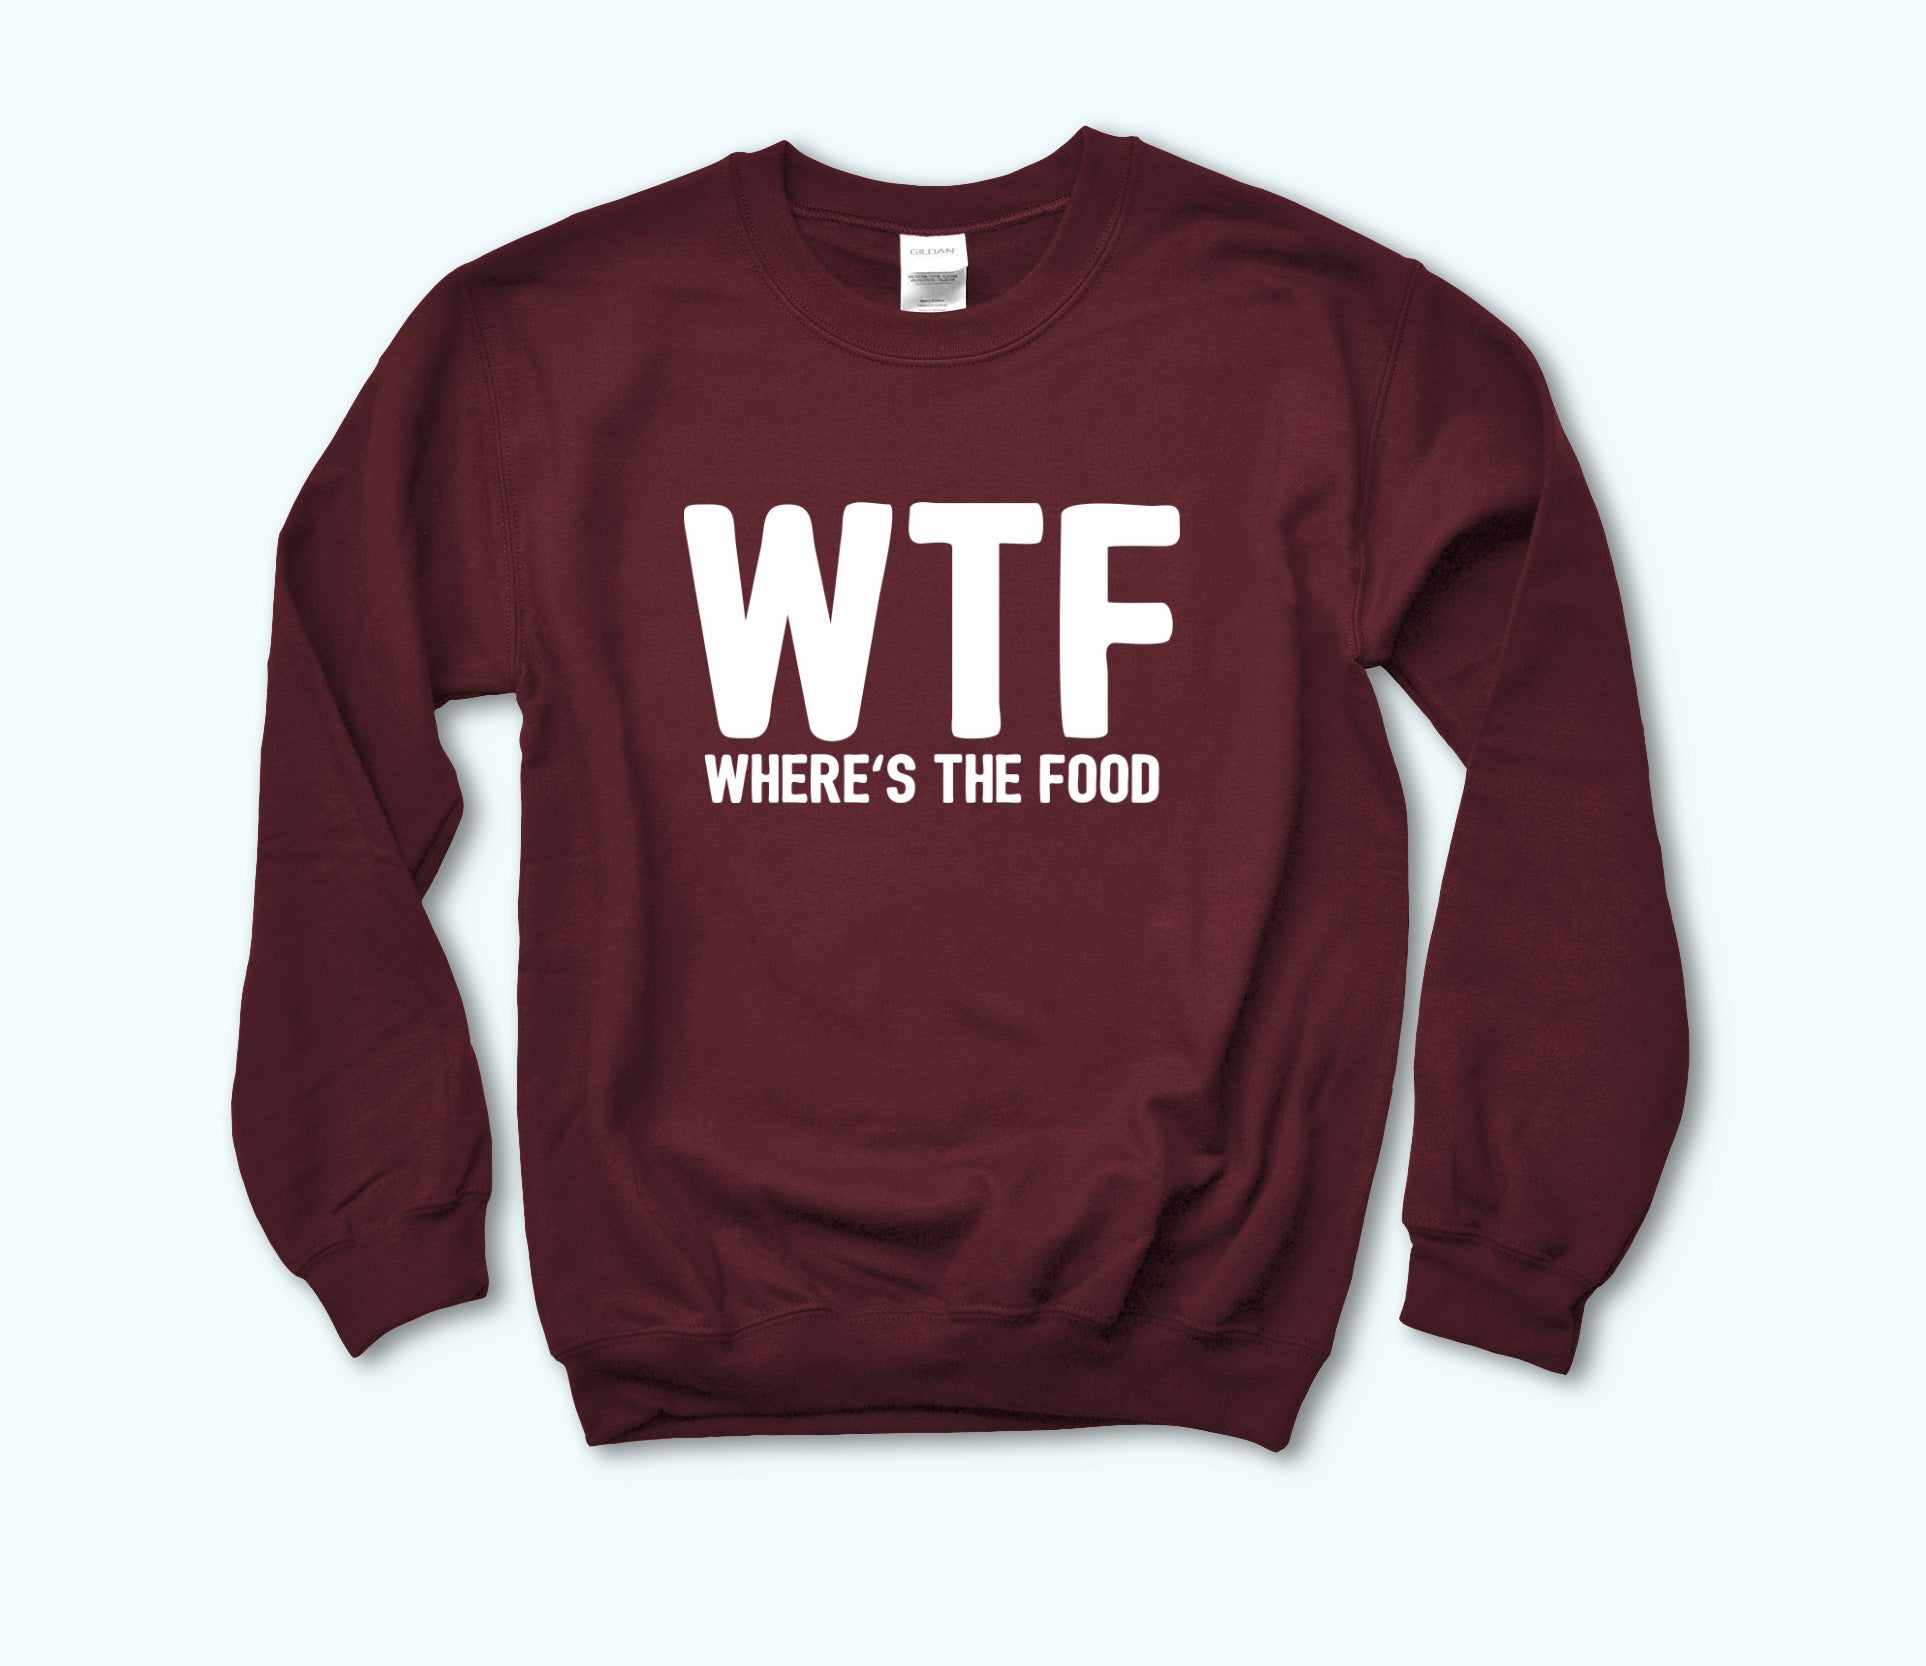 Maroon sweatshirt that says wtf where's the food - HighCiti